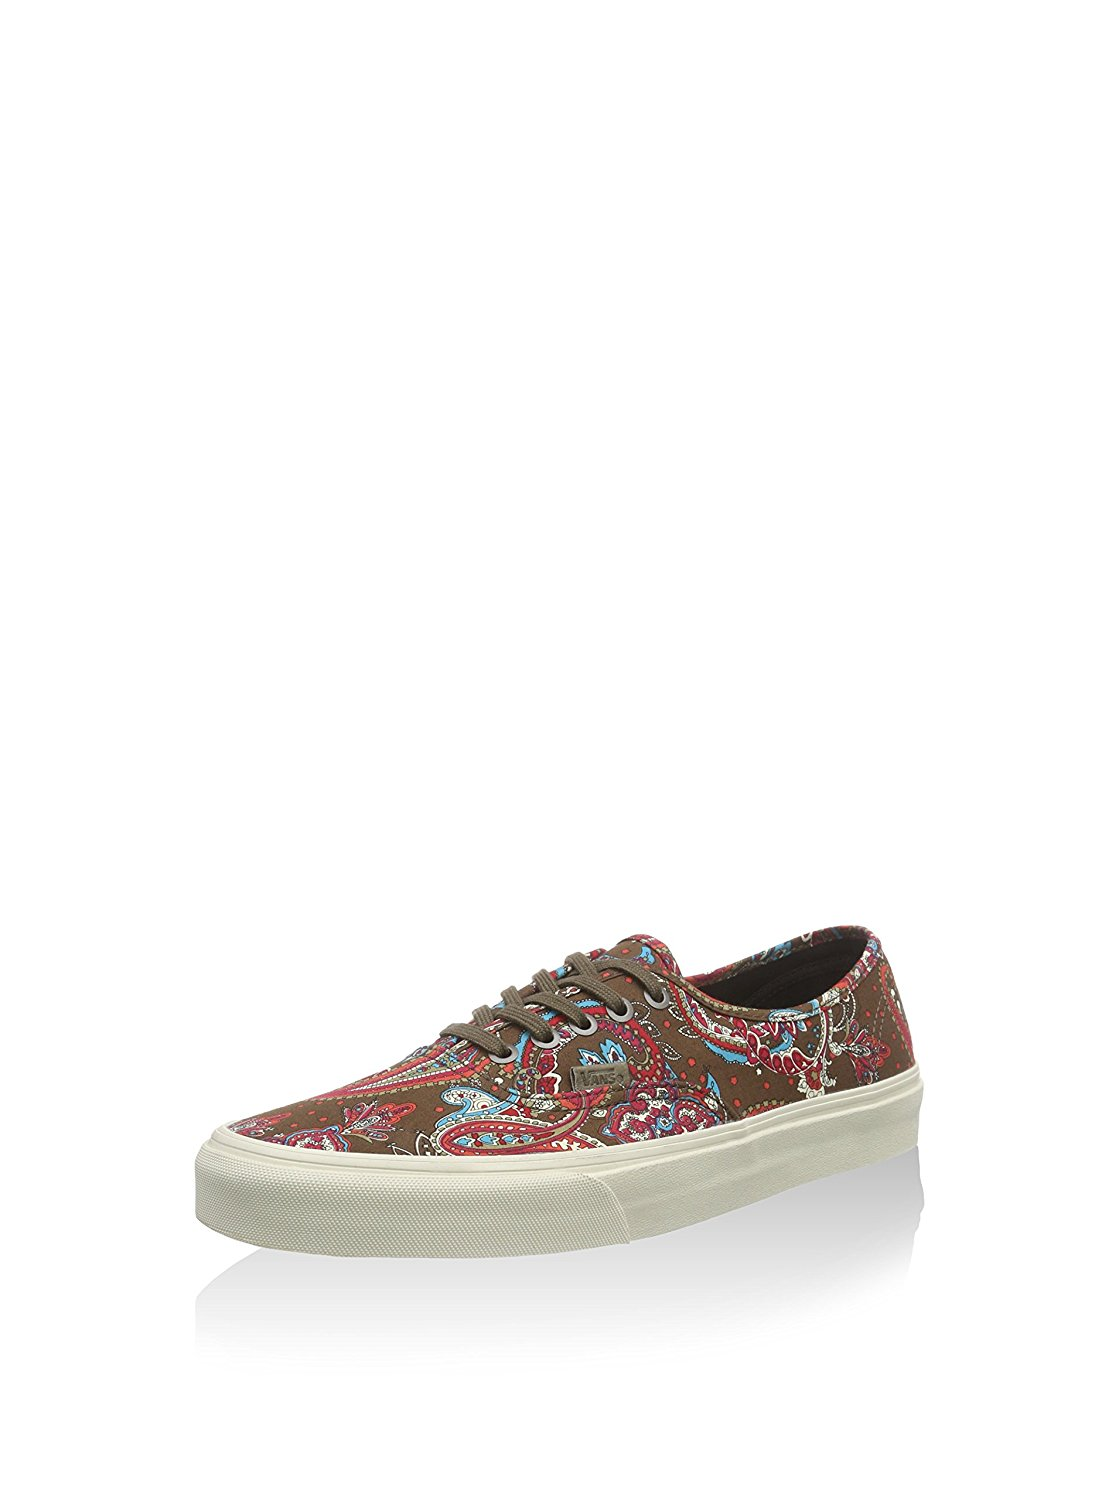 Vans Authentic California Womens 9   Mens 7.5 Paisley Green Olive  Skateboarding Shoes f0b356cf1